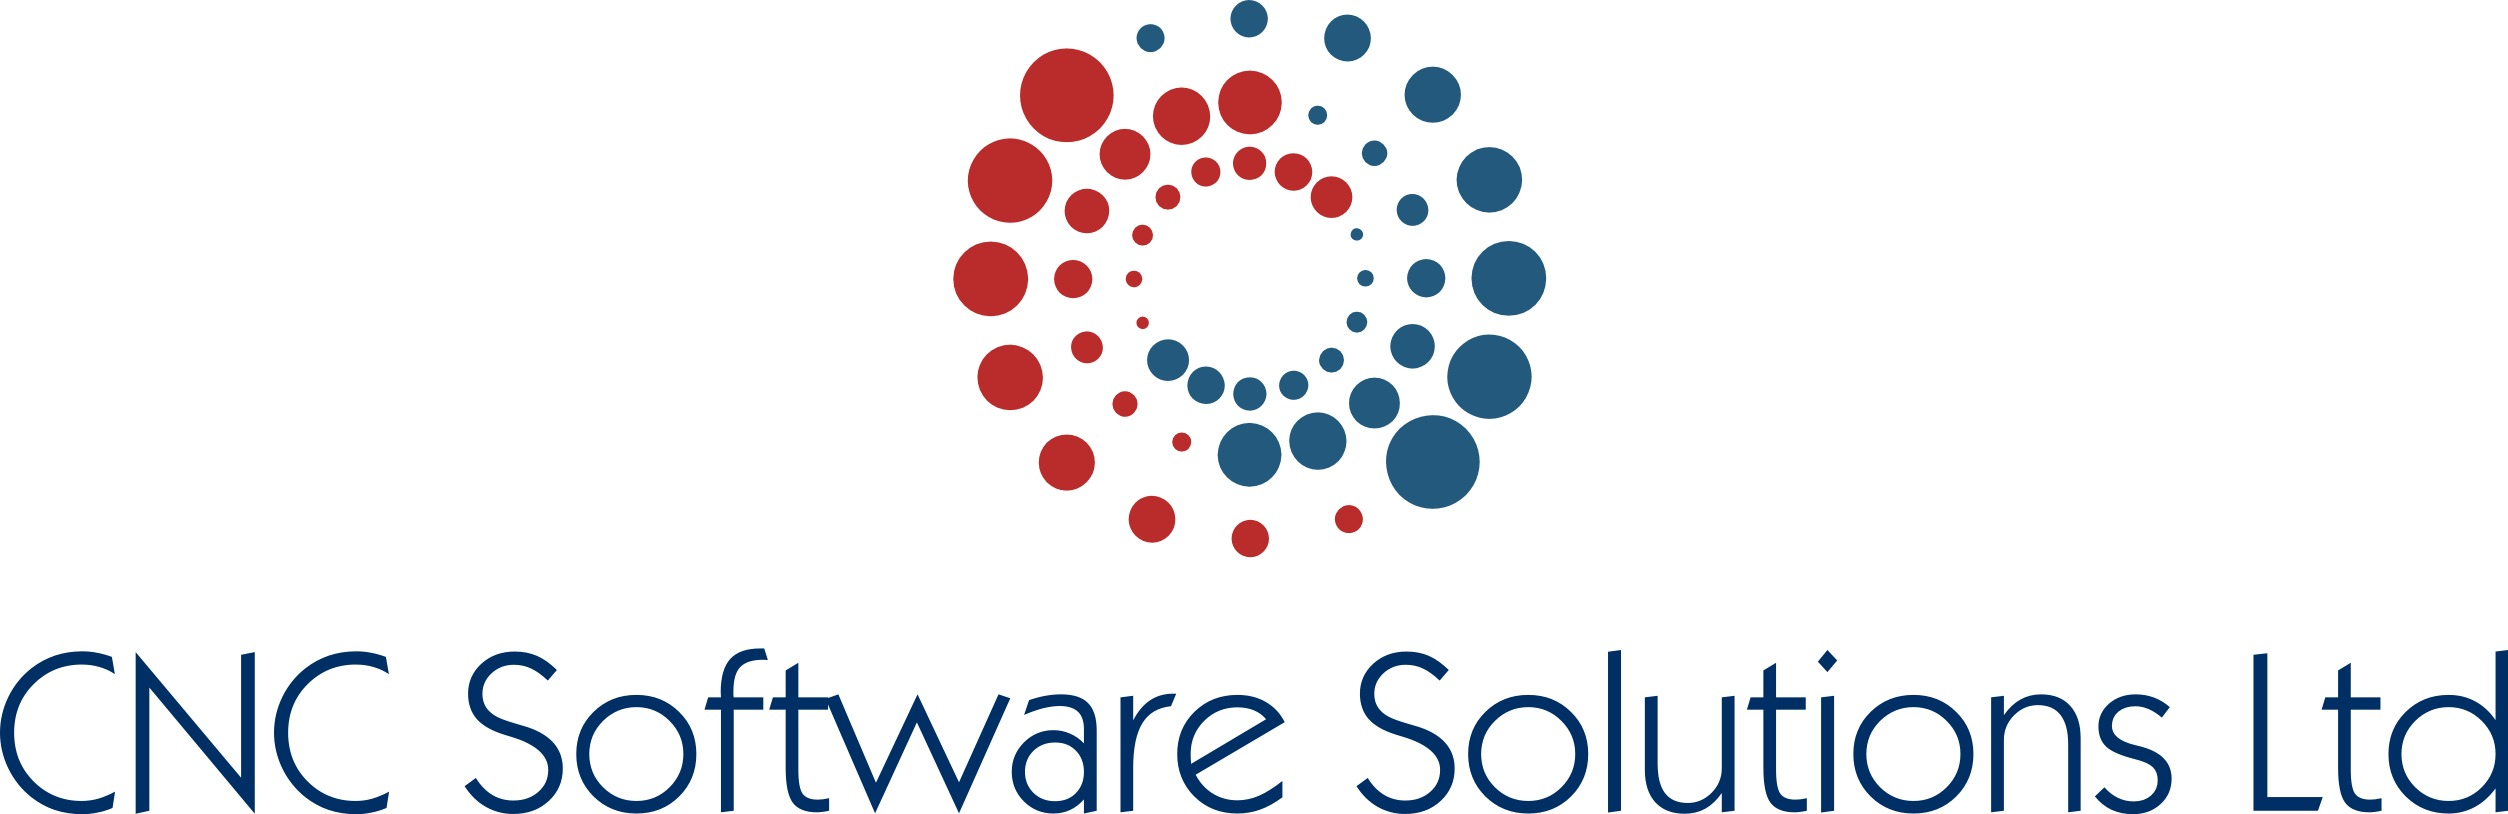 CNC Software Solutions logo